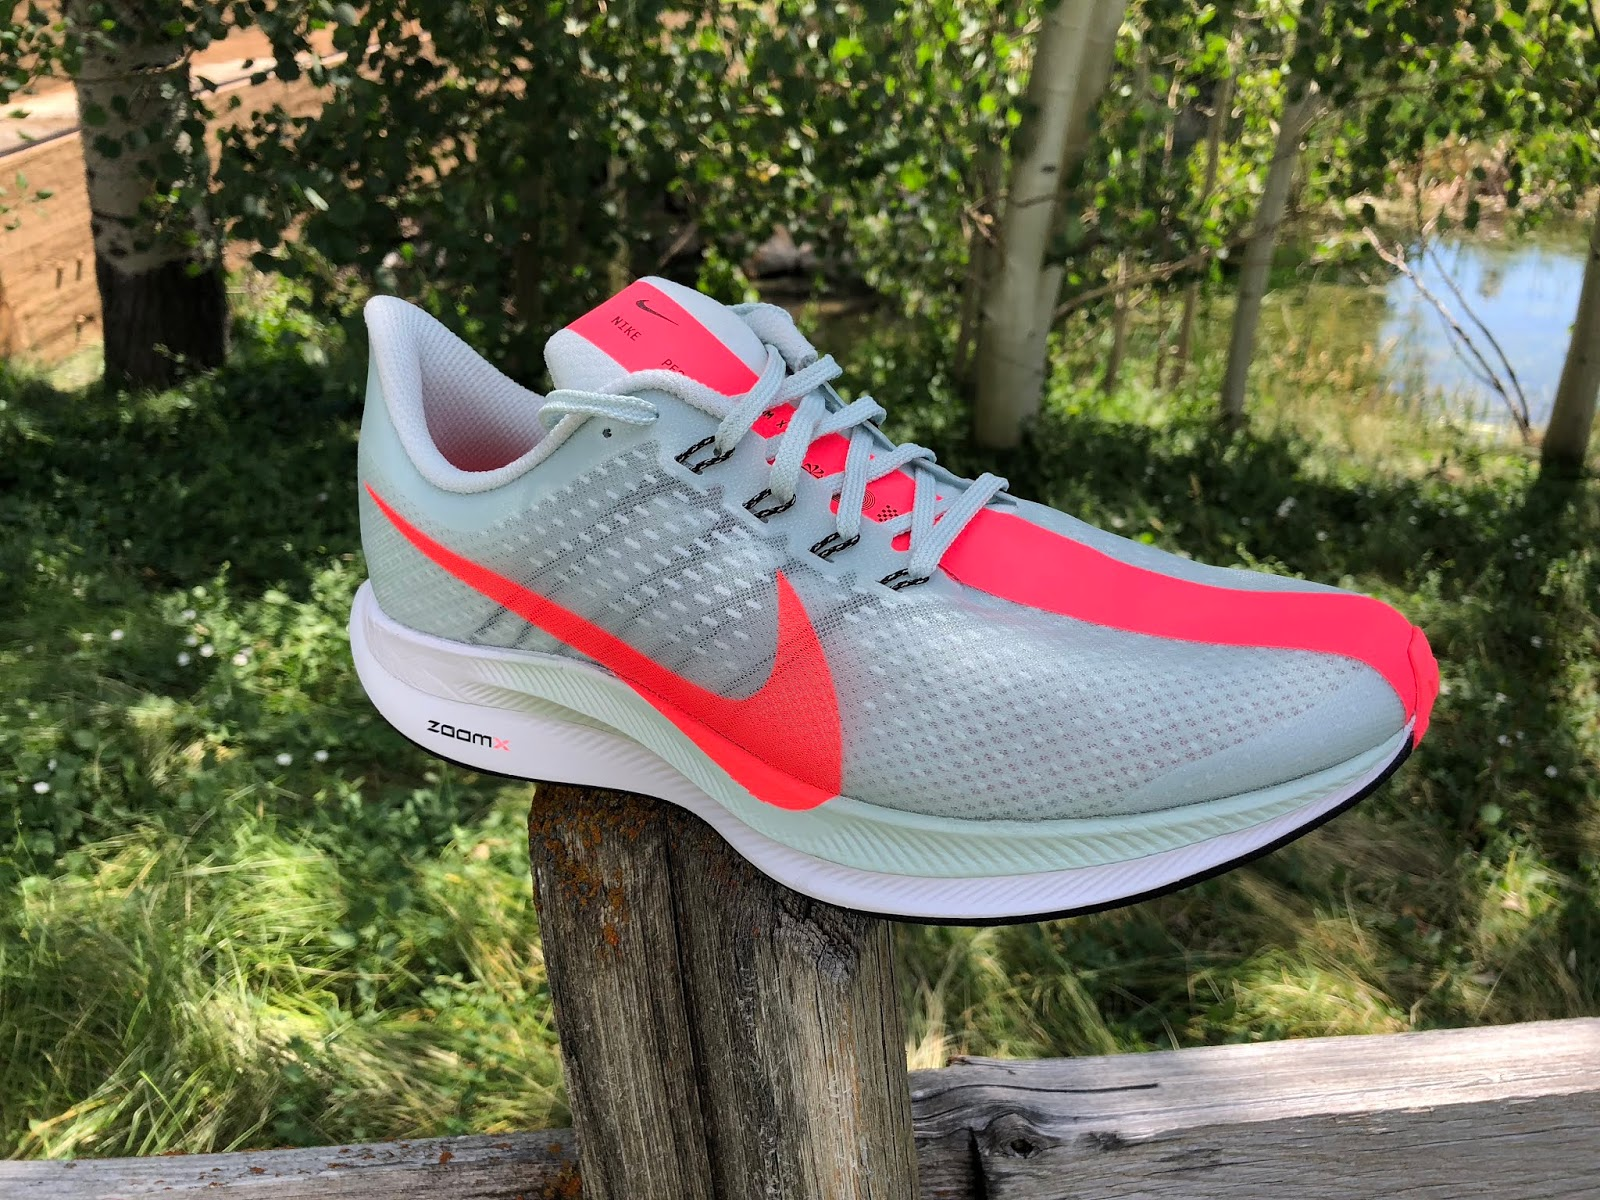 new styles b8bb2 1002c Nike Zoom Pegasus Turbo 120 Mile Road Test Review Update Light,  Comfortable Trainer Built for Breaking 2... or Breaking 4!